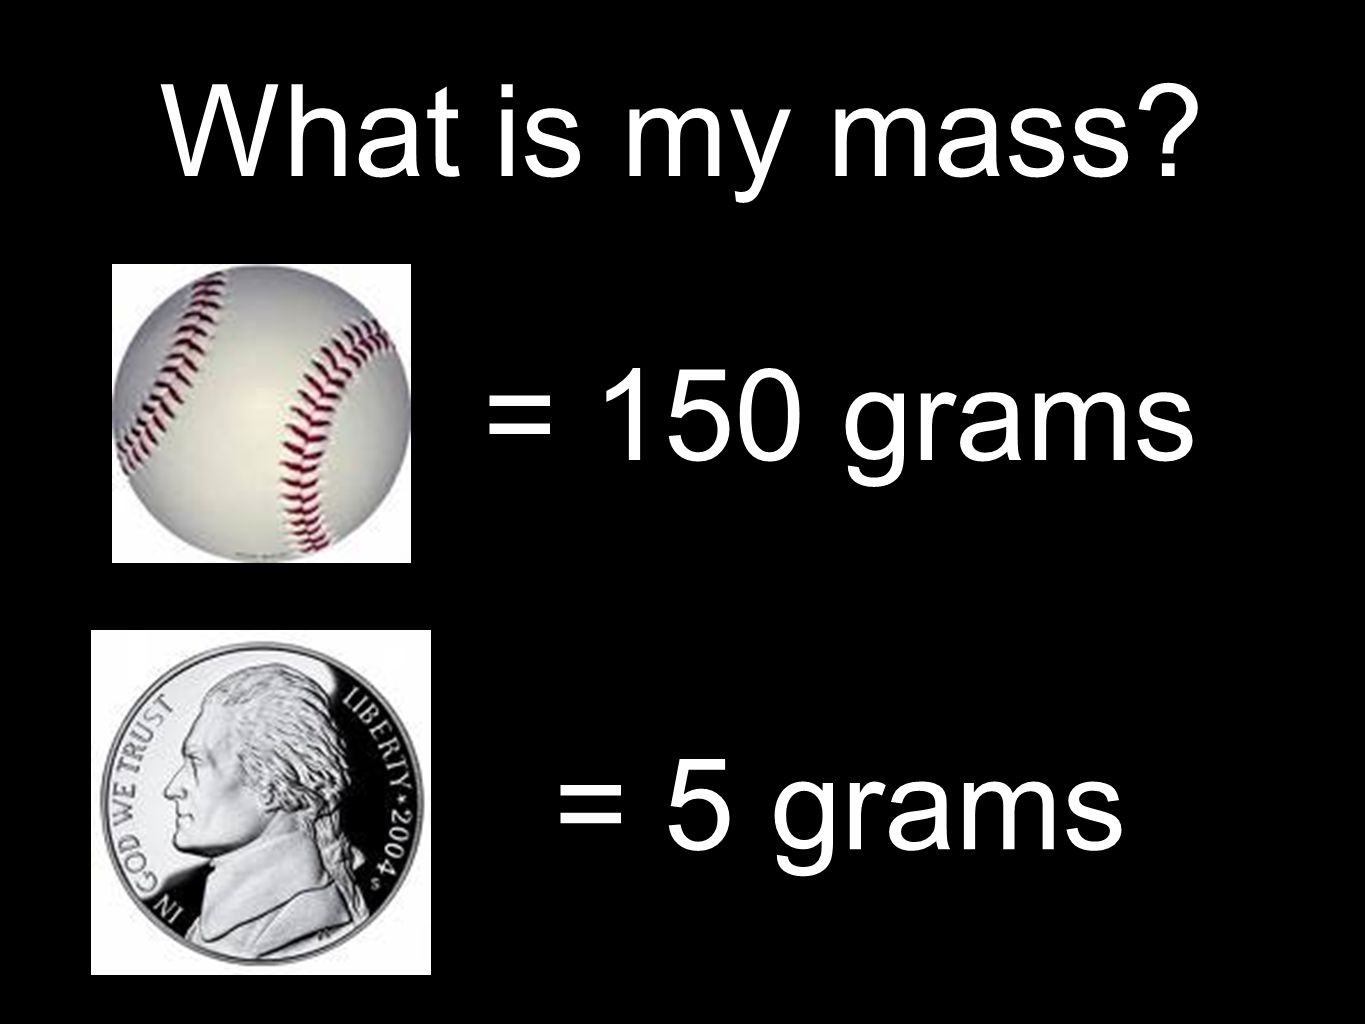 What is my mass = 150 grams = 5 grams